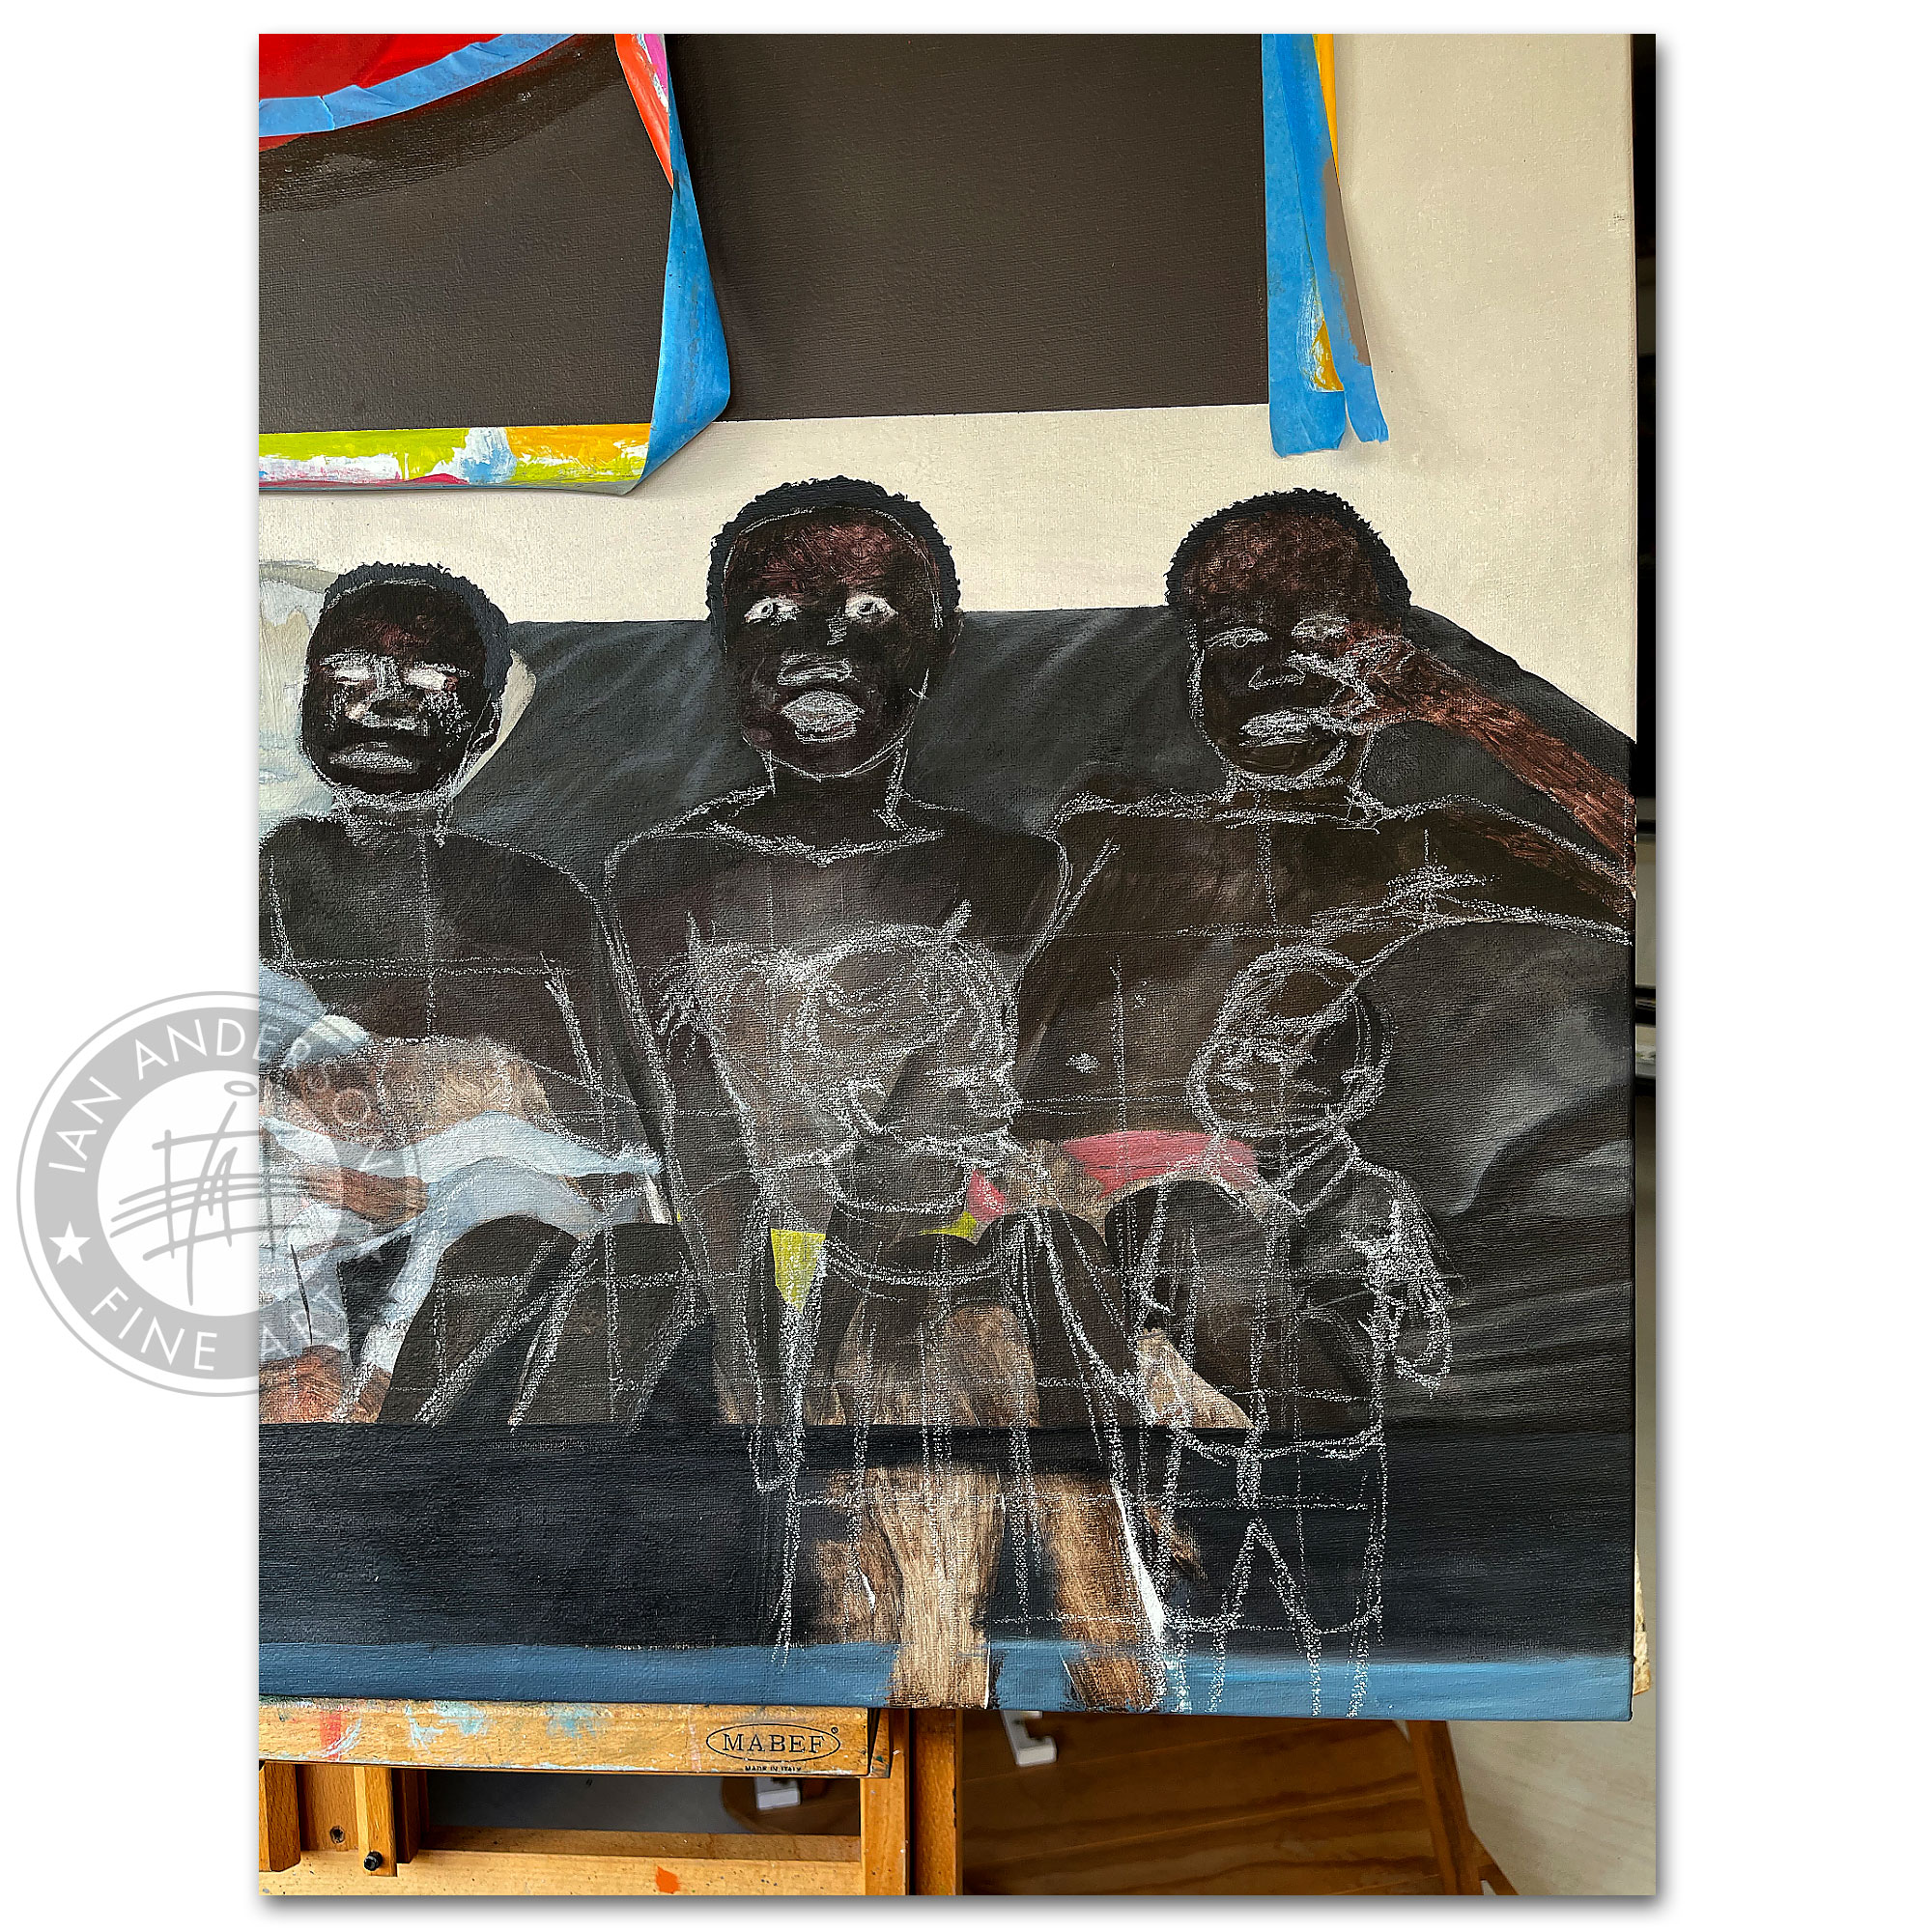 Blood veins peace prejudice The story of love and diversity - A provocative oil painting on ethnic diversity 3